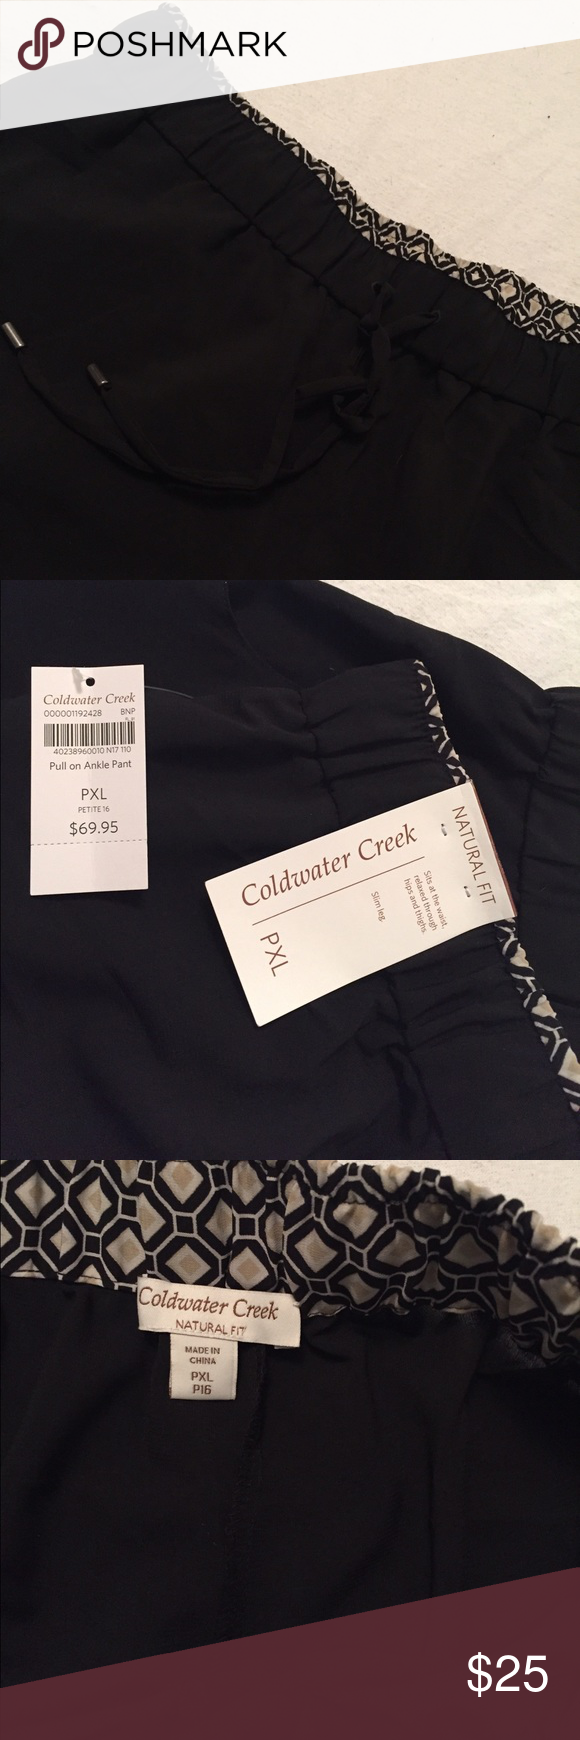 Coldwater Creek pants Pull on ankle pants with drawstring. Natural fit - sits at the waist, relax through hips and thighs with slim leg. Coldwater Creek Pants